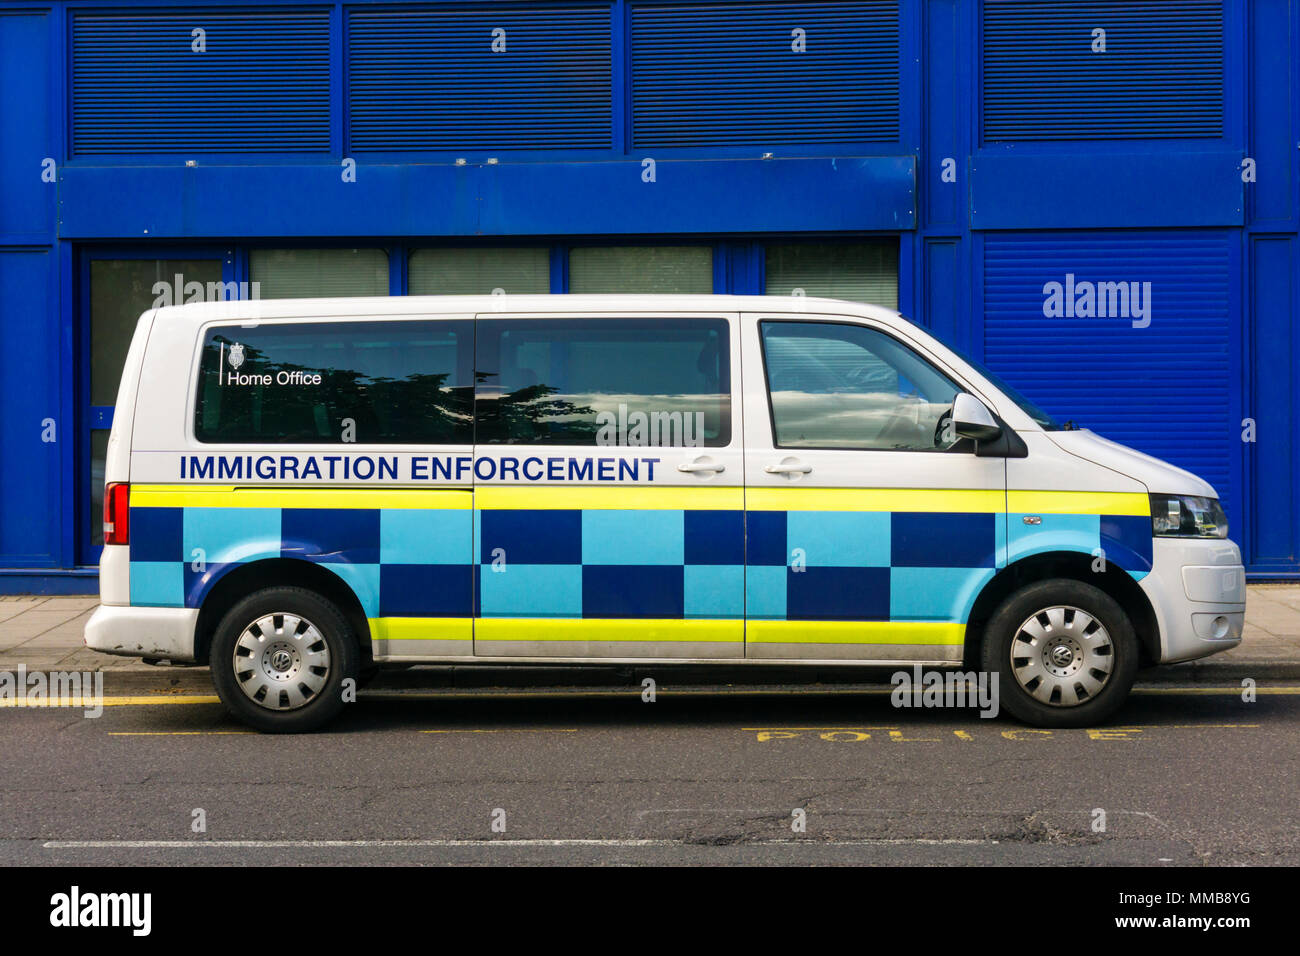 A white Volkswagen Home Office Immigration Enforcement van parked in Beckenham, South London. - Stock Image